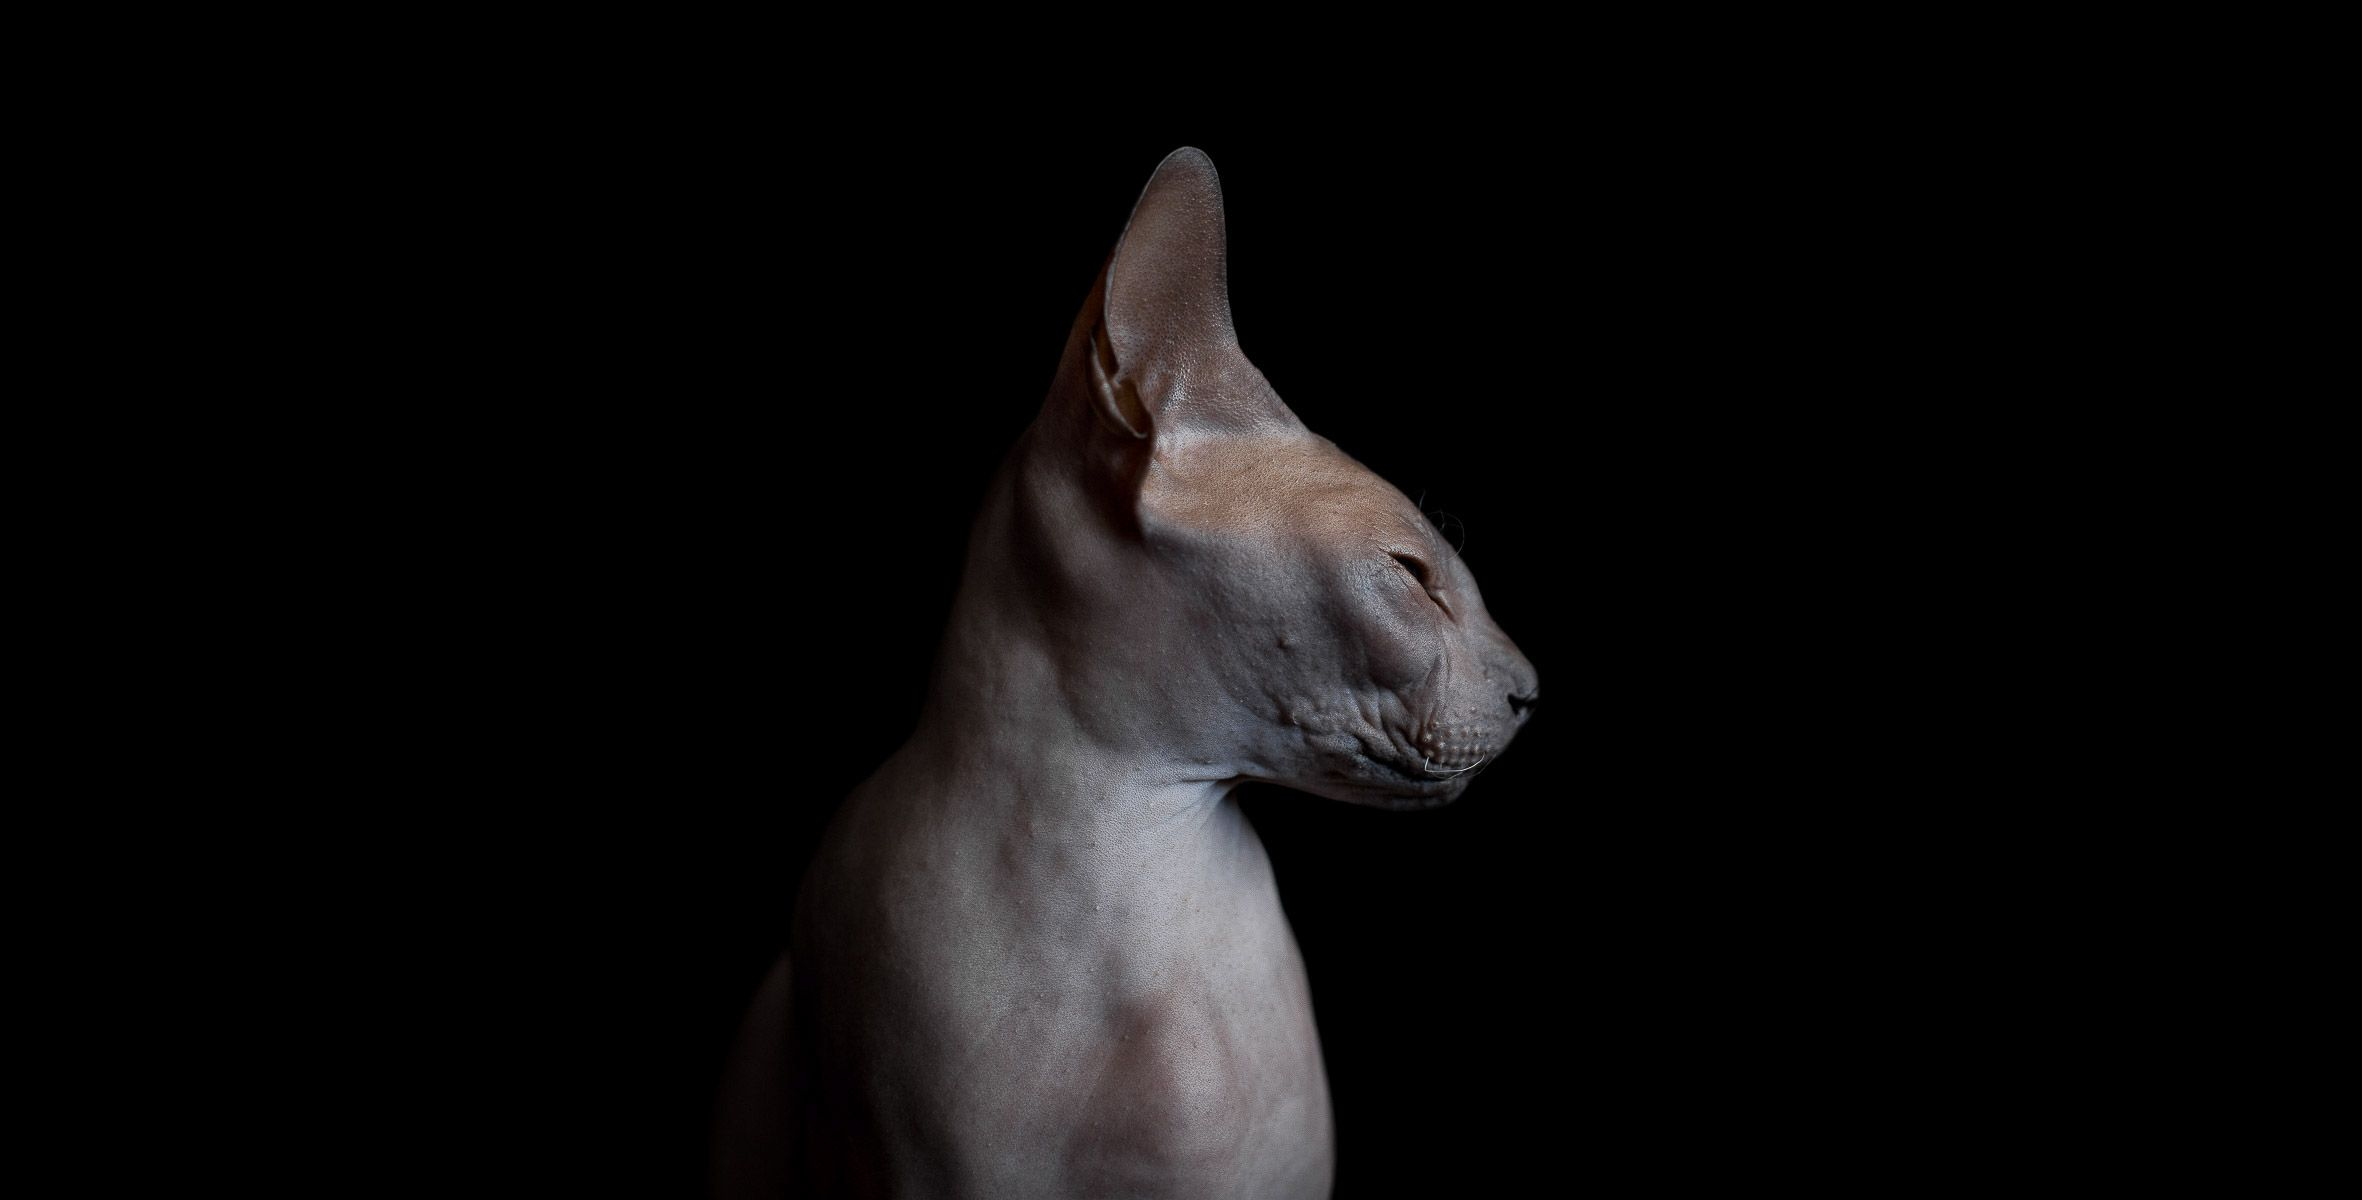 The Disturbing Beauty Of Sphynx Cats Frame Your Pet Los Angeles Pet Photographer Sphynx Cat Hairless Cat Cat Photography